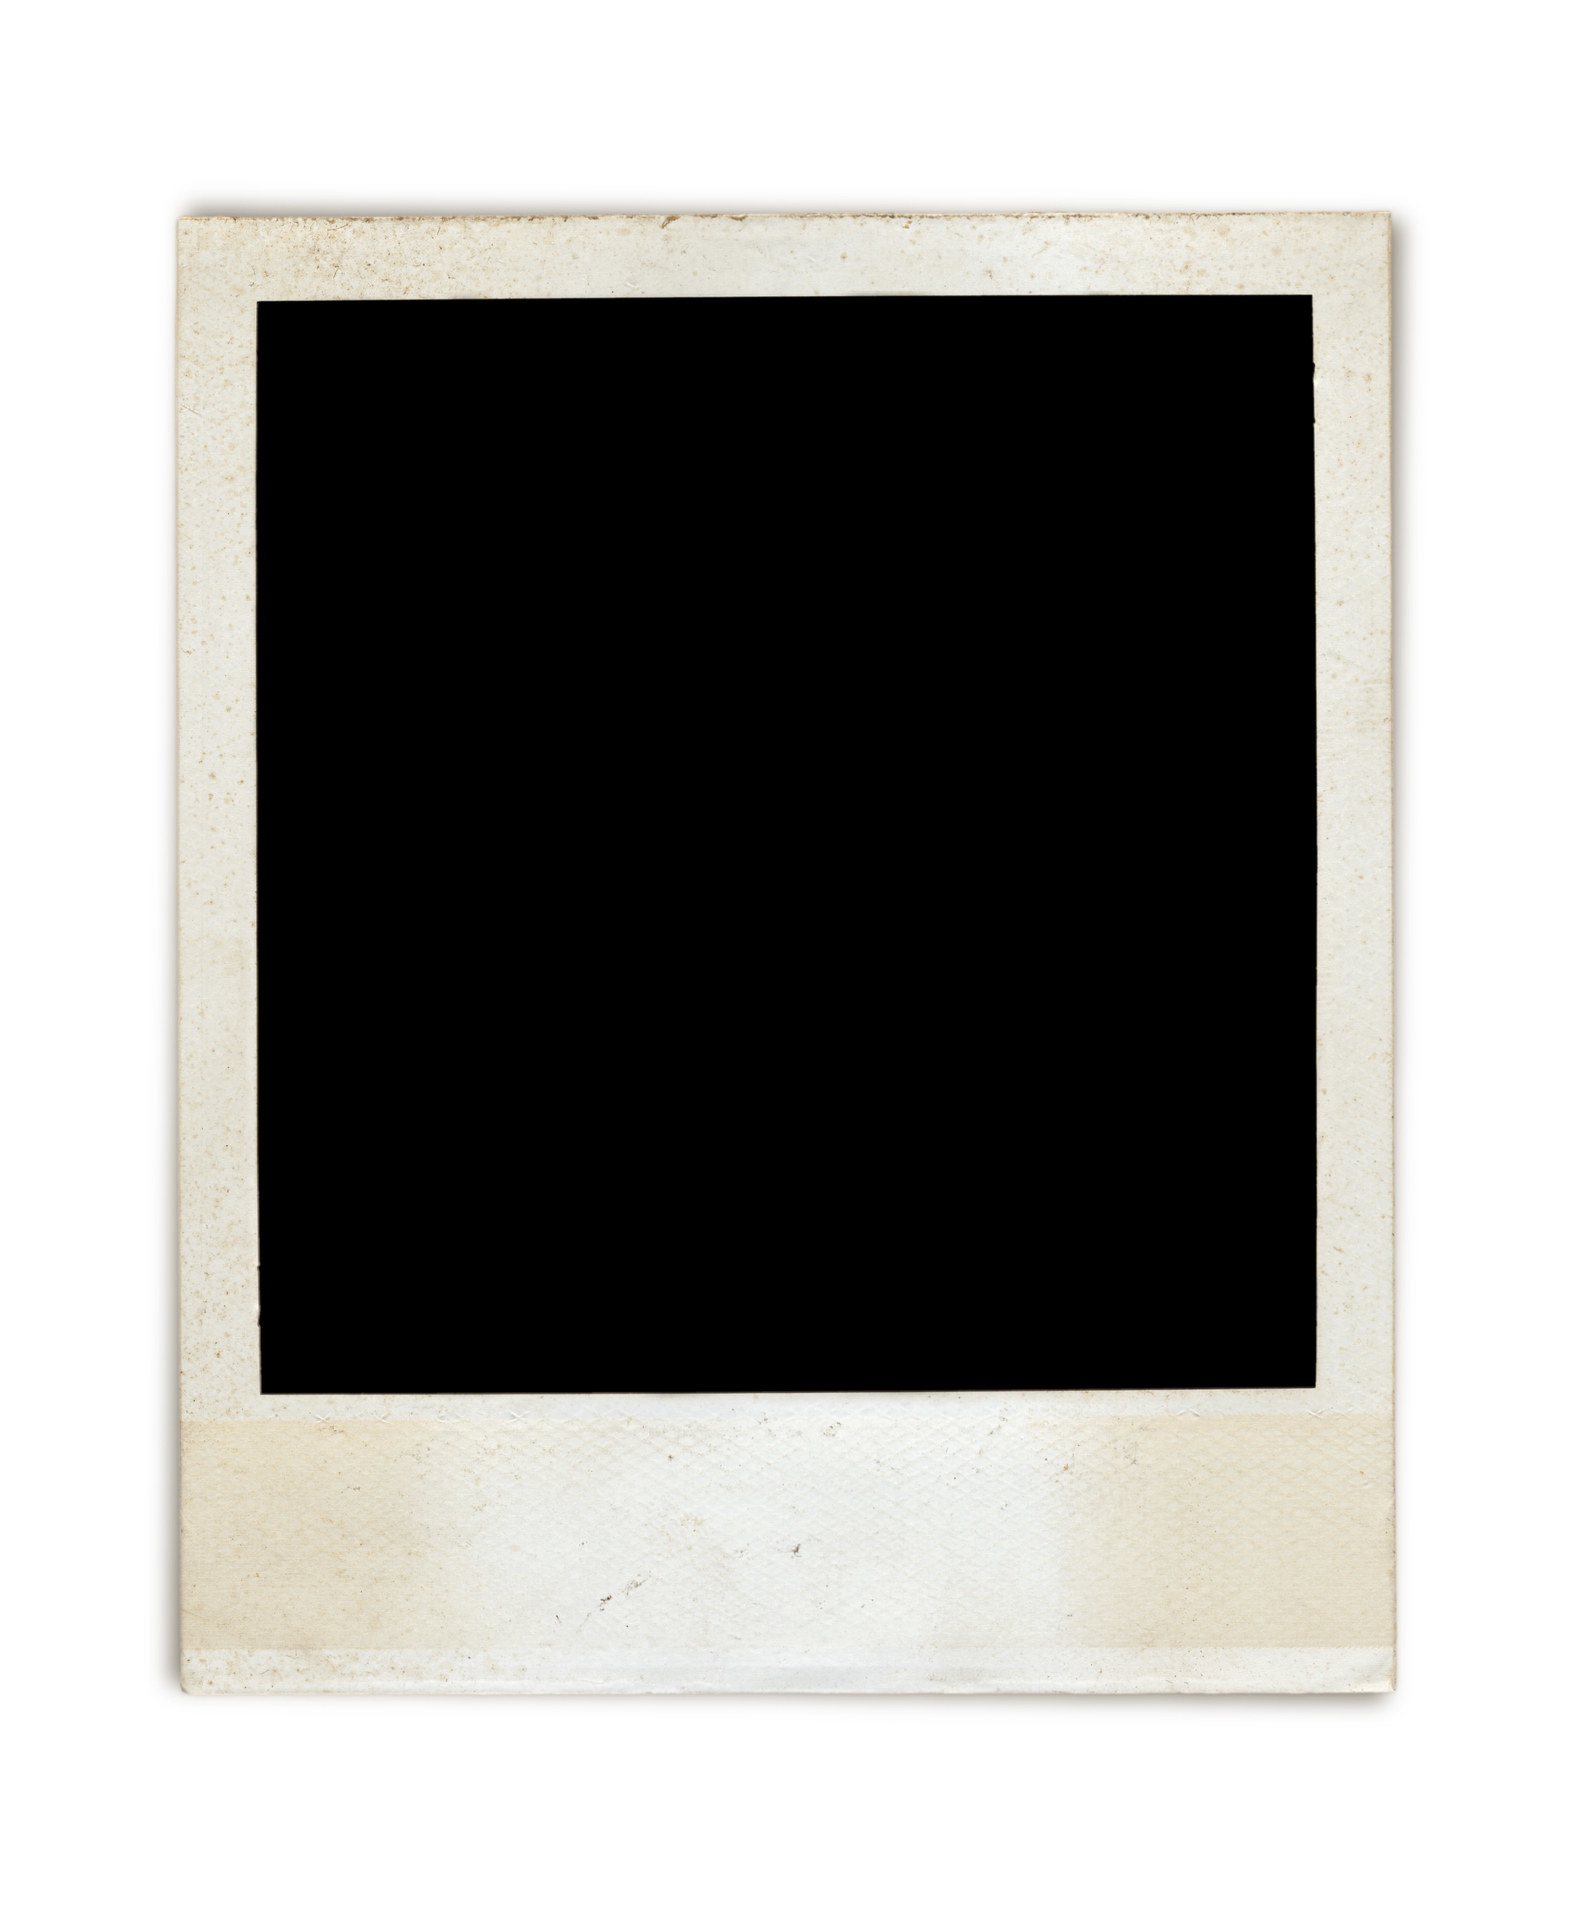 A photograph of blackness